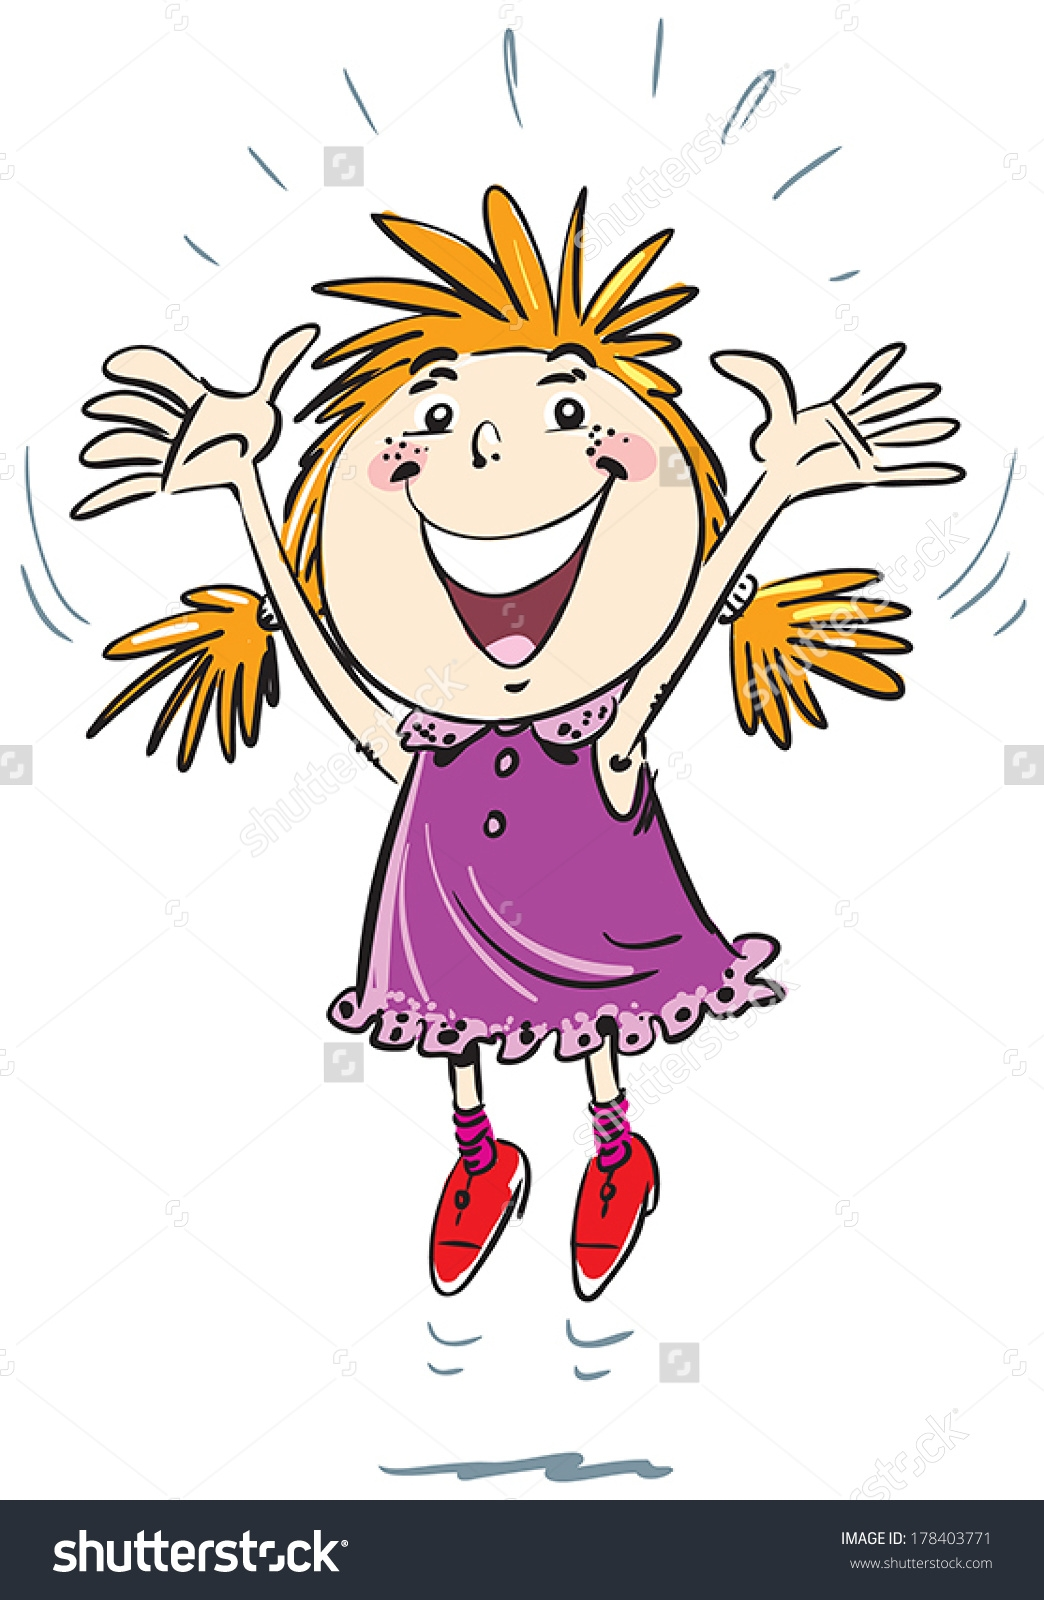 vector library Joy clipart. Luxury girl jumping for